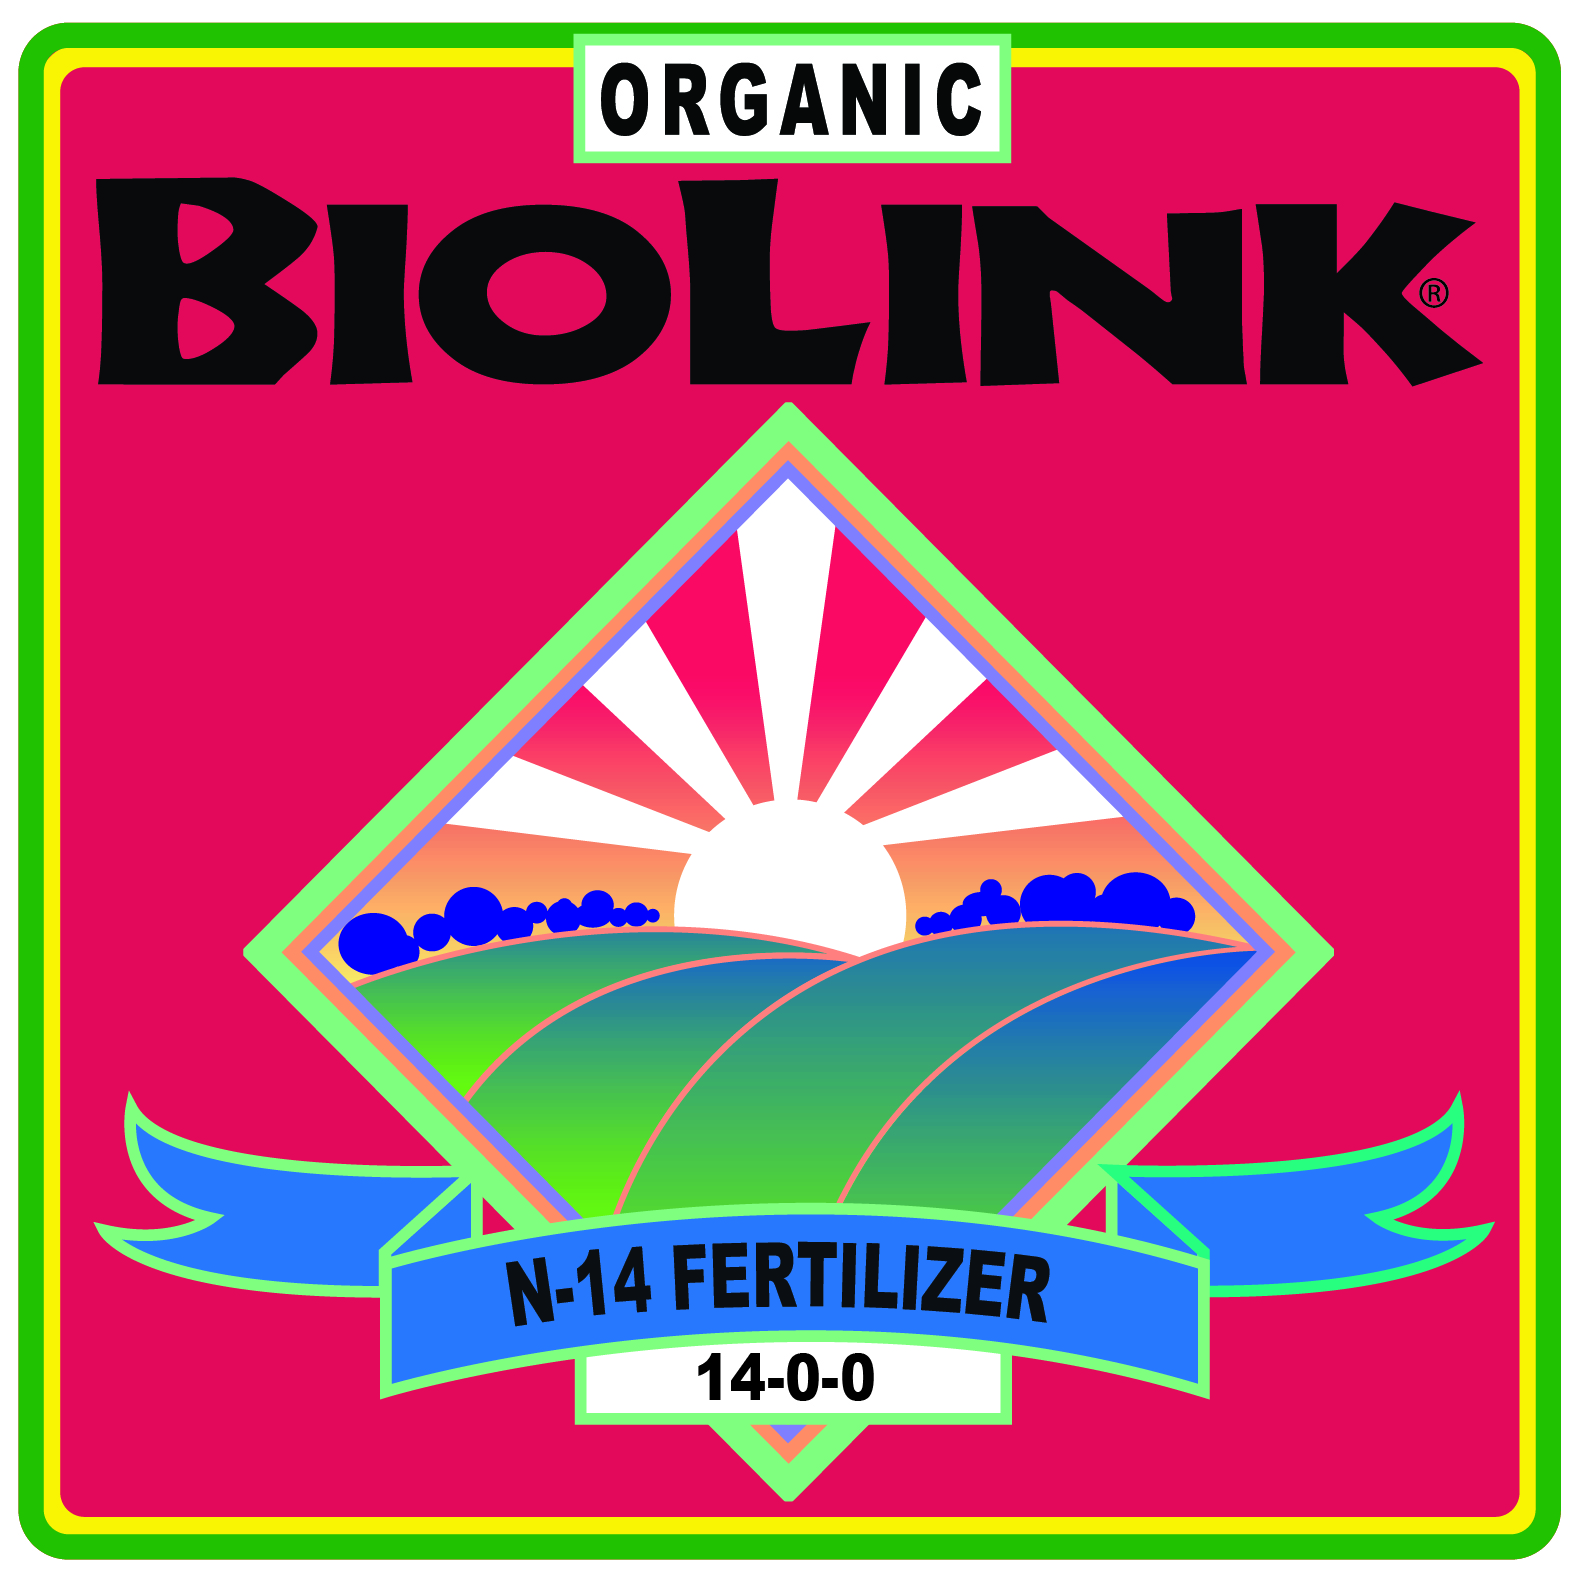 ORGANIC BIOLINK® N-14 FERTILIZER 14-0-0